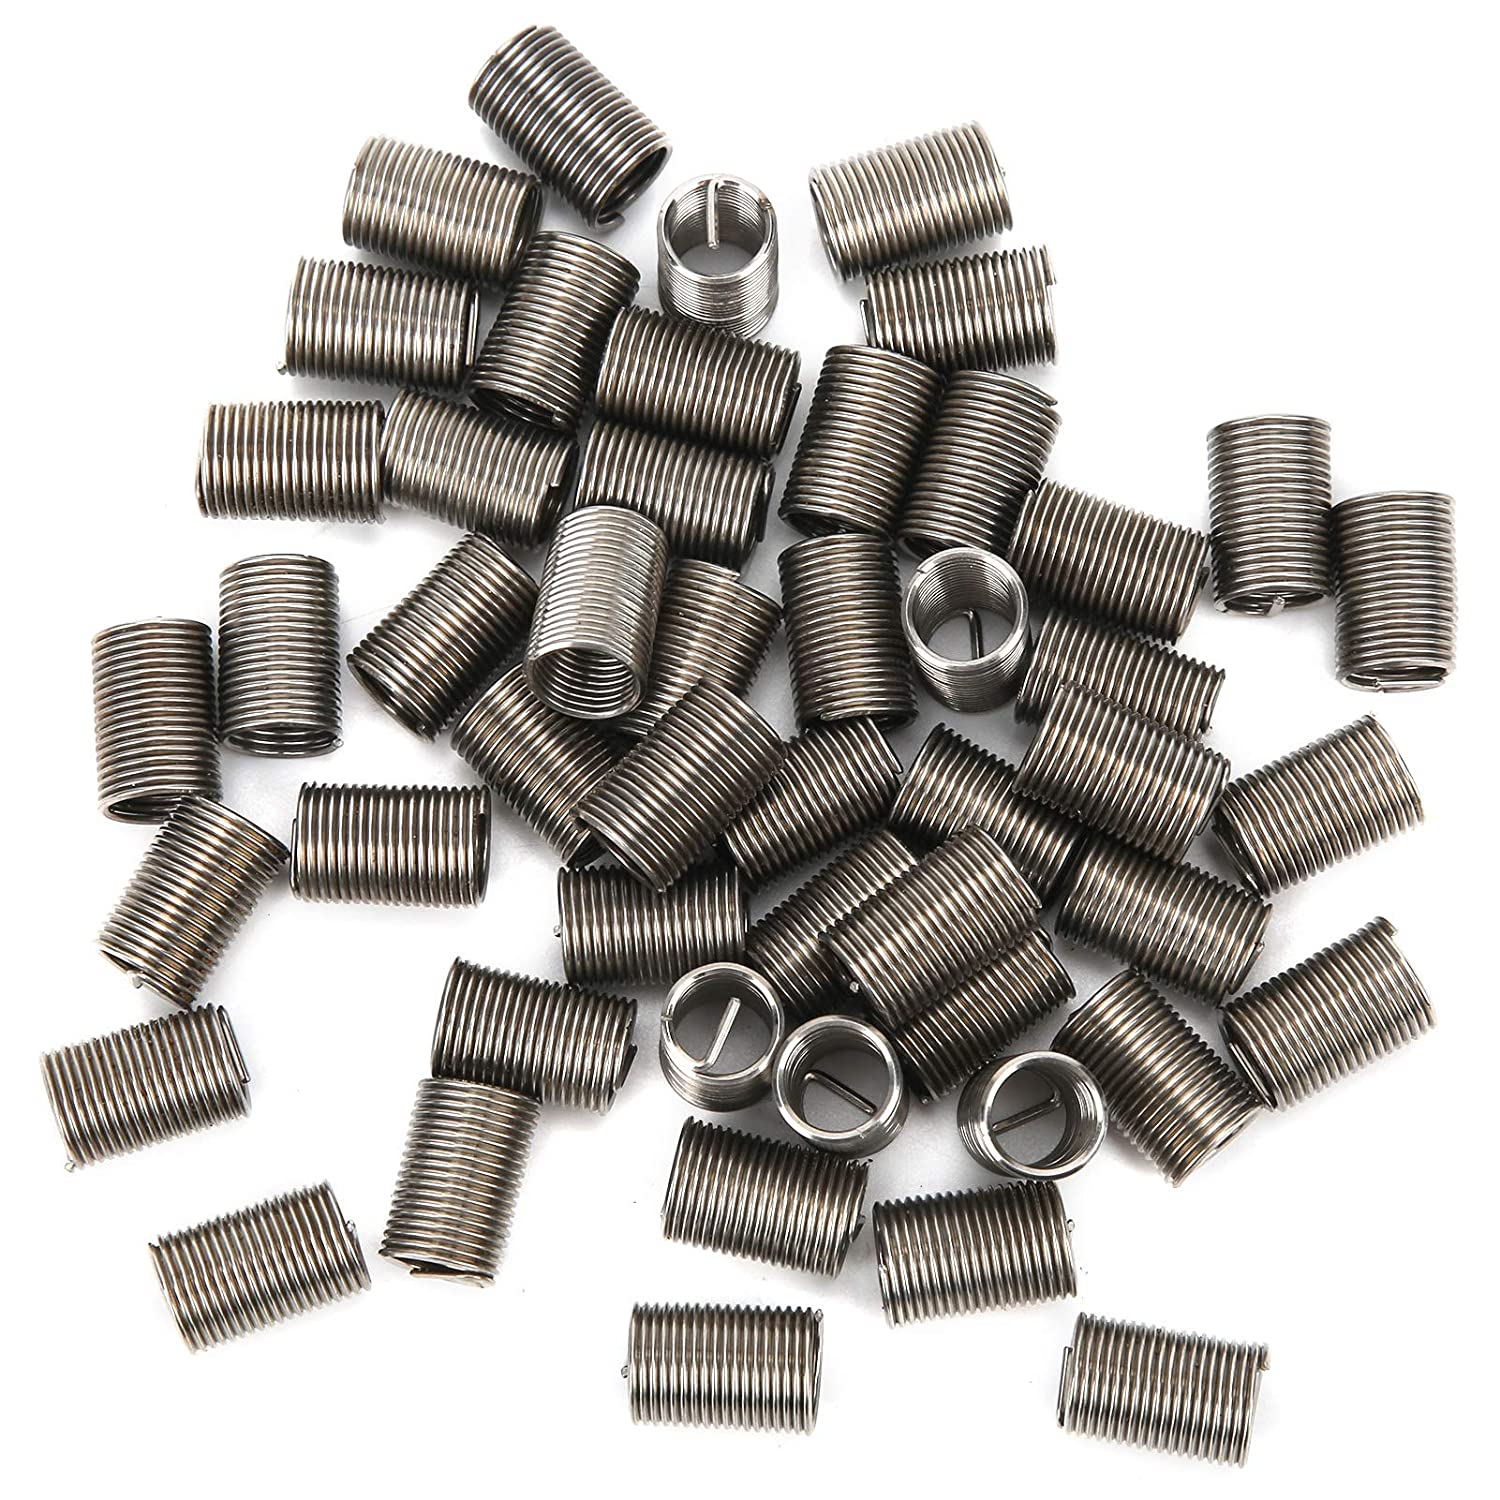 Thread Sleeve Threaded Bushing Not Many popular brands Deformed Beauty products Easily Elasticity f